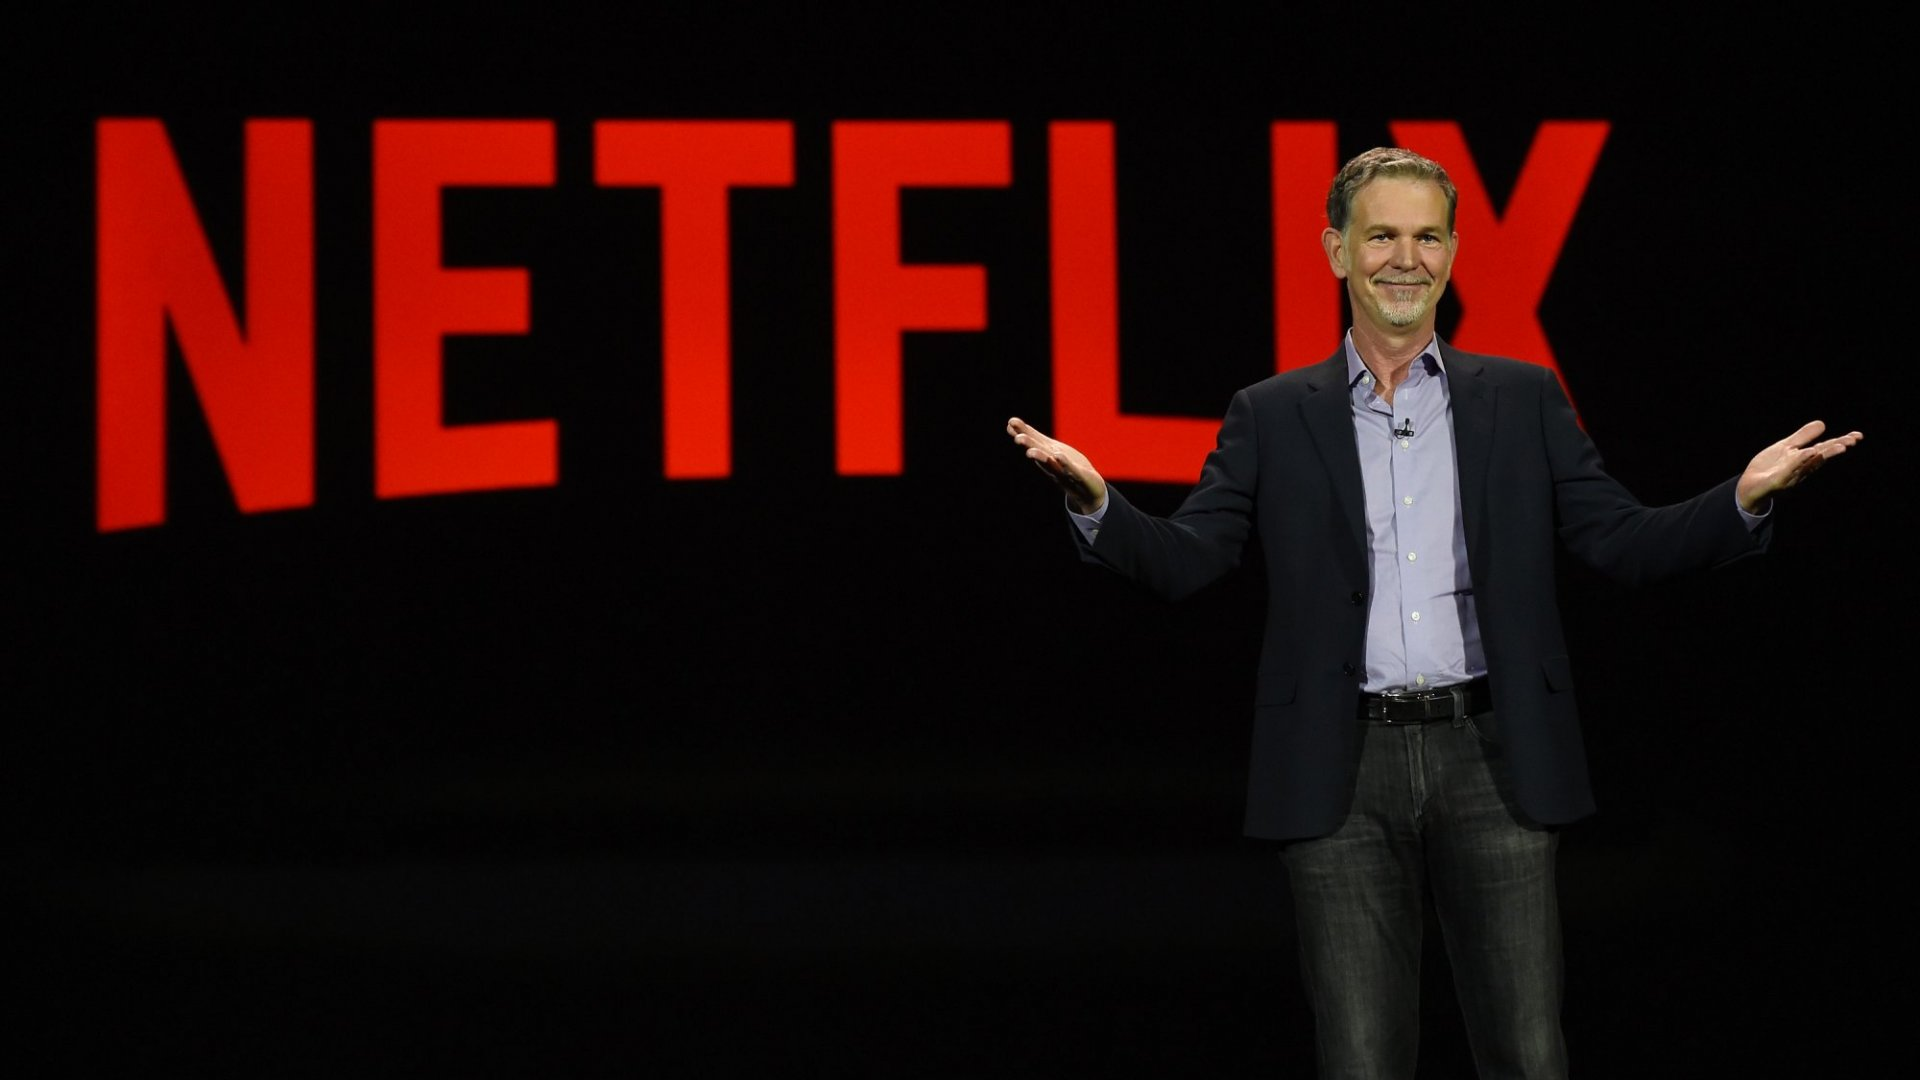 Watch Netflix? Get Your Act Together About Password Sharing or Go to Jail